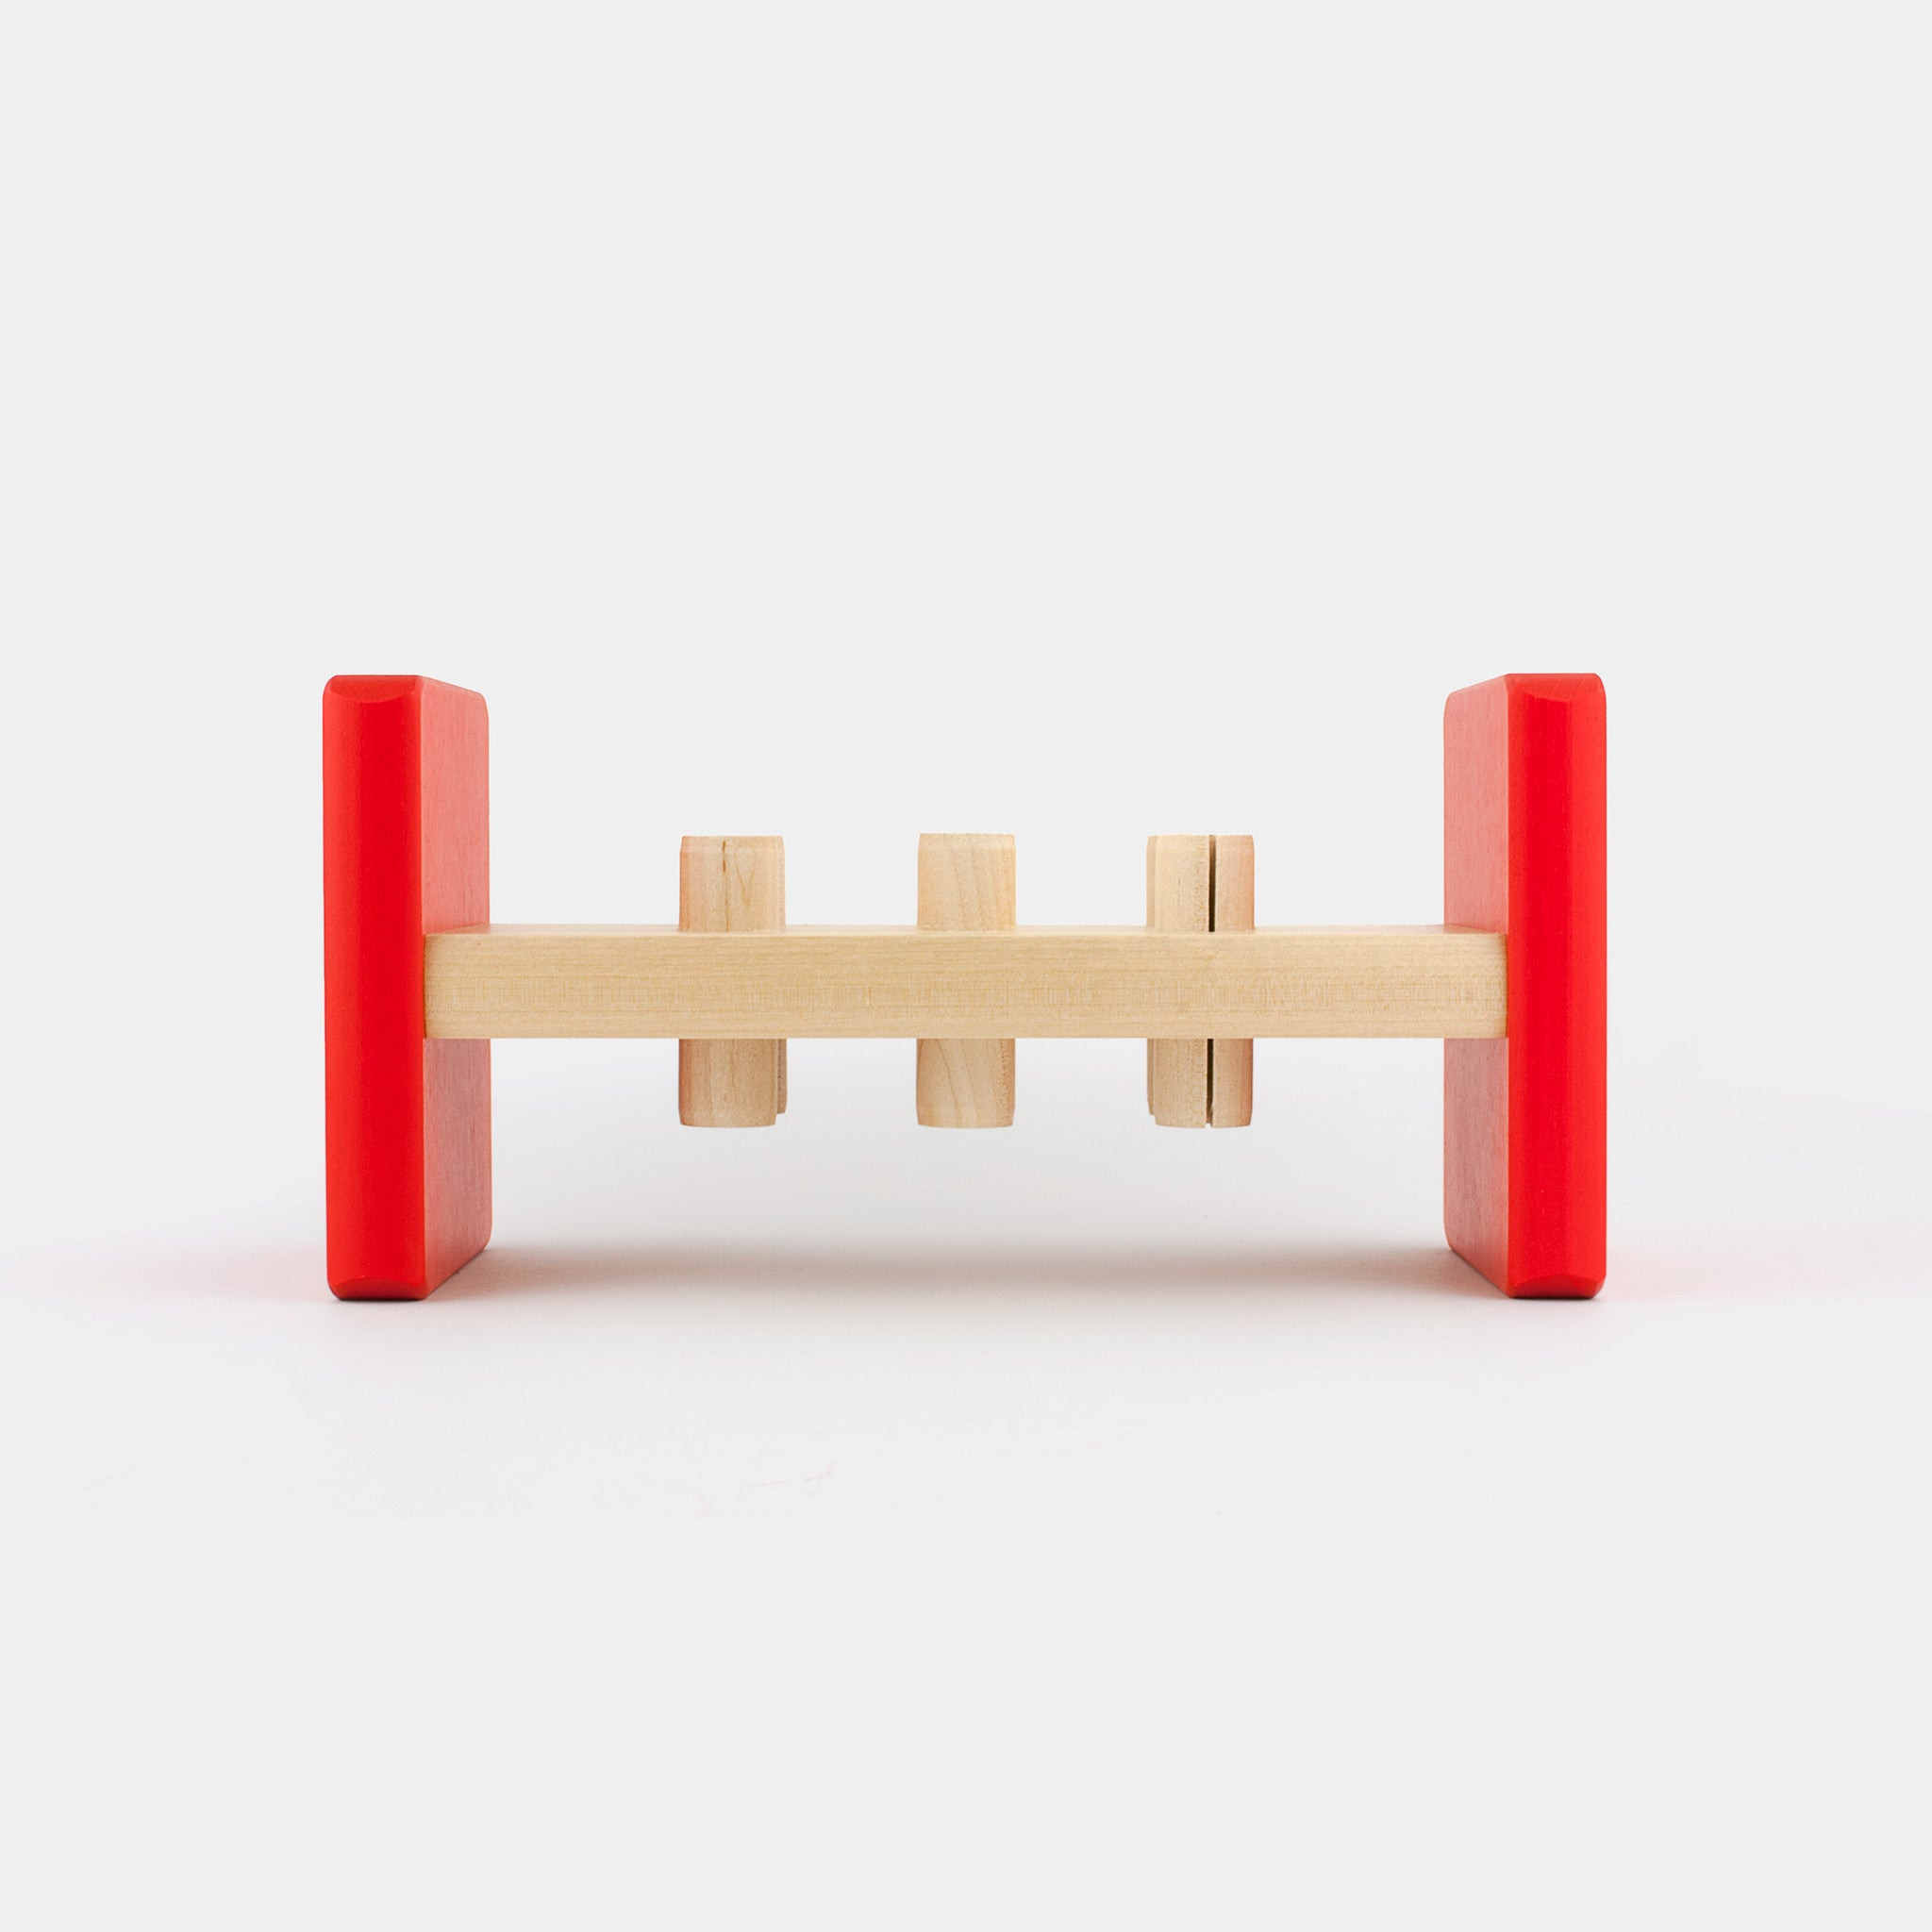 The classic birch wood hammer toy, painted with non-toxic paint; Hakka is designed in the 1970s and helps children develop motor skills.